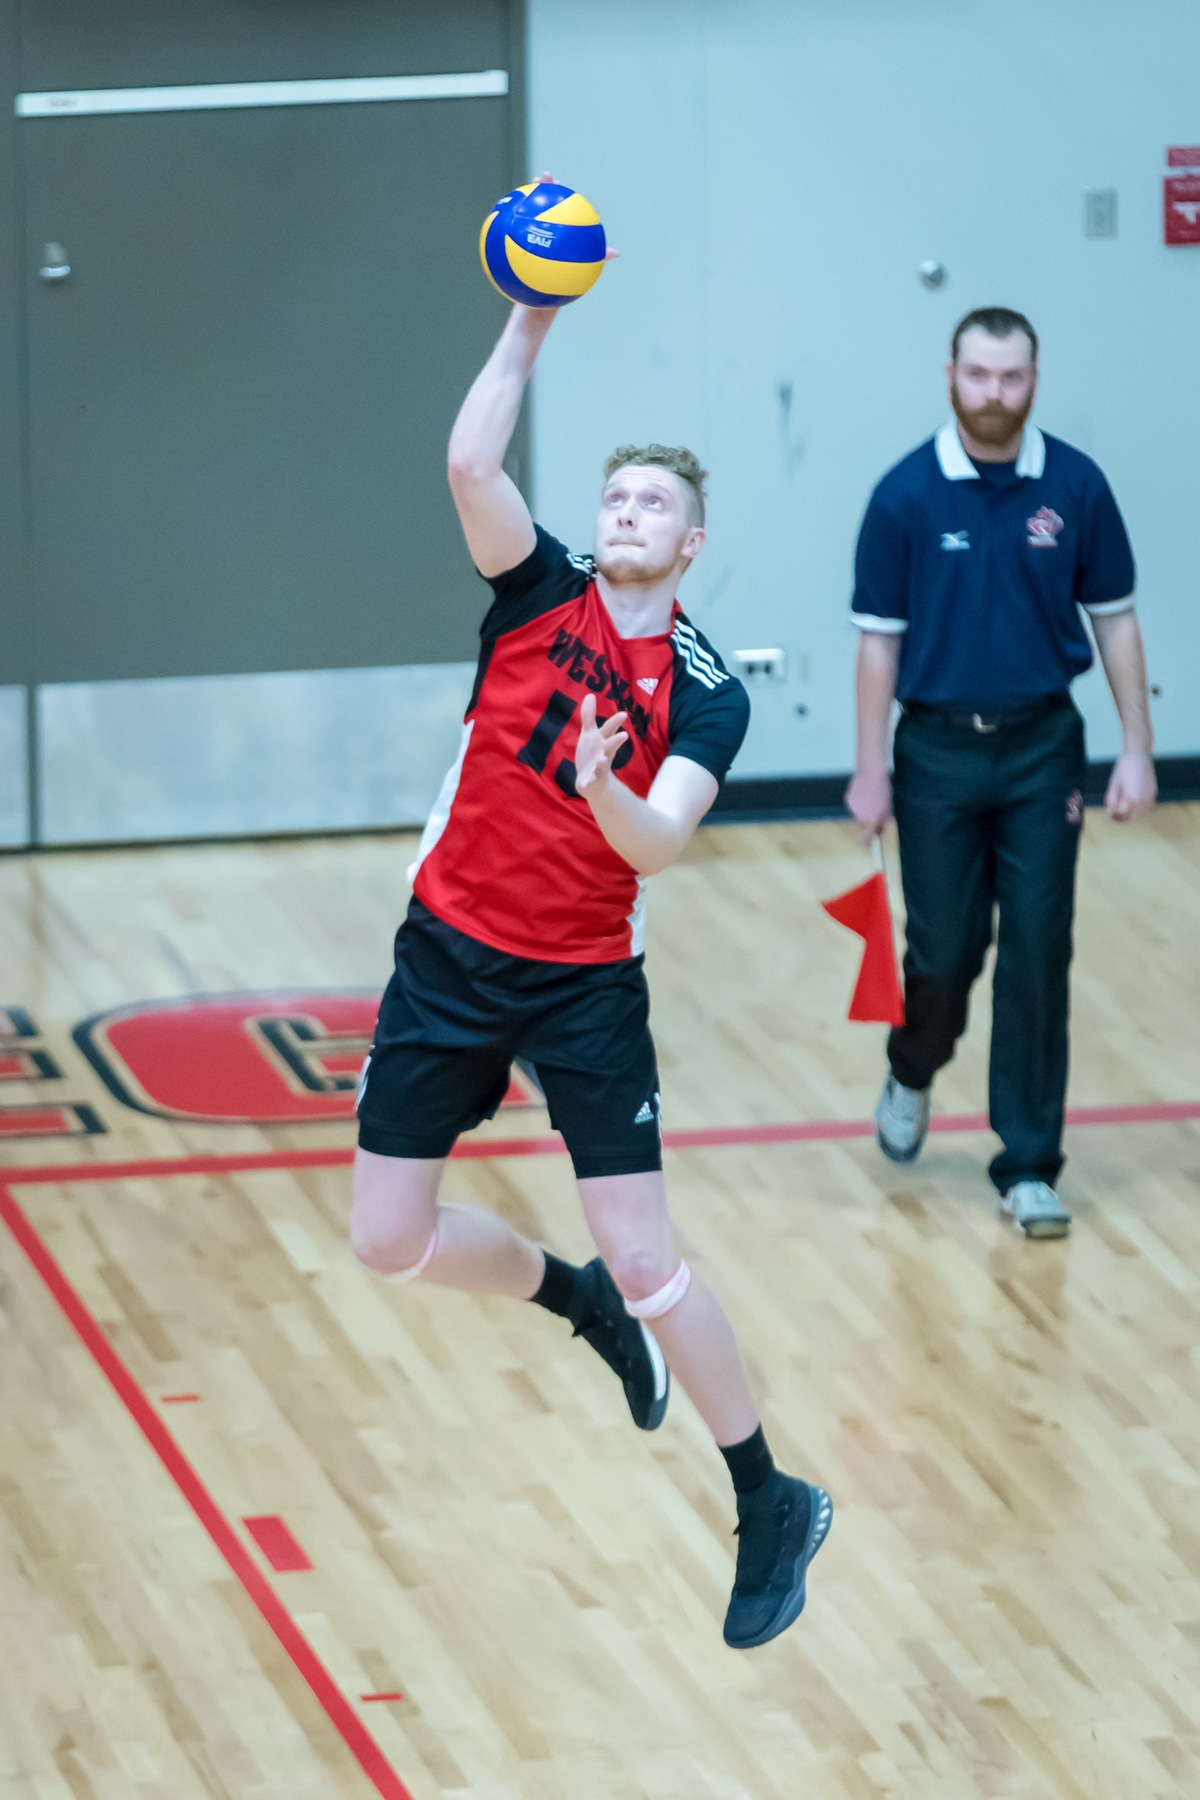 Ethan Duncan had two aces, as well as 12 kills, as the Wesmen beat the UBCO Heat Friday night. (Kelly Morton photo)